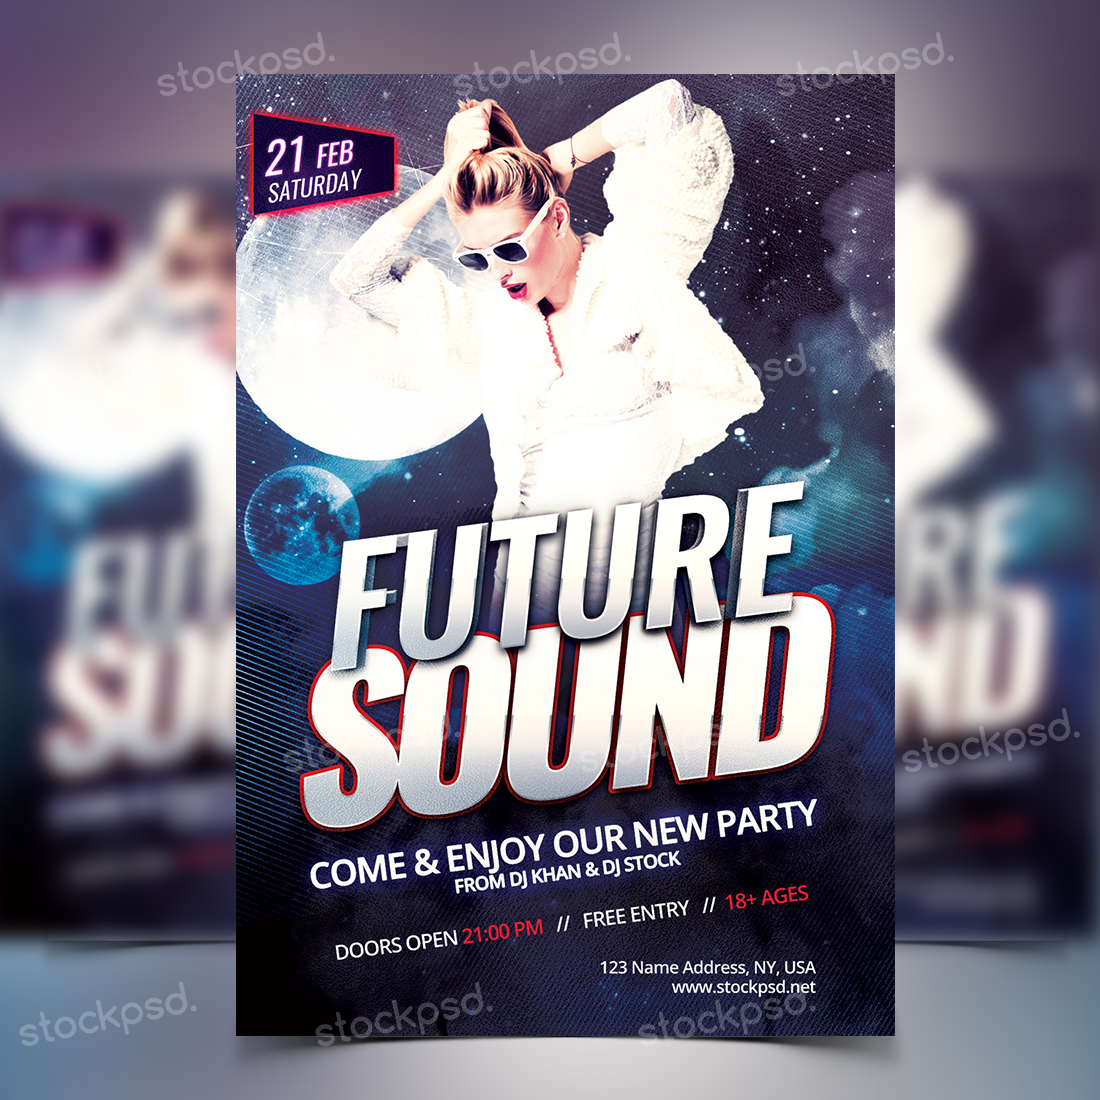 Future Sound Party – FREE PSD Flyer Template